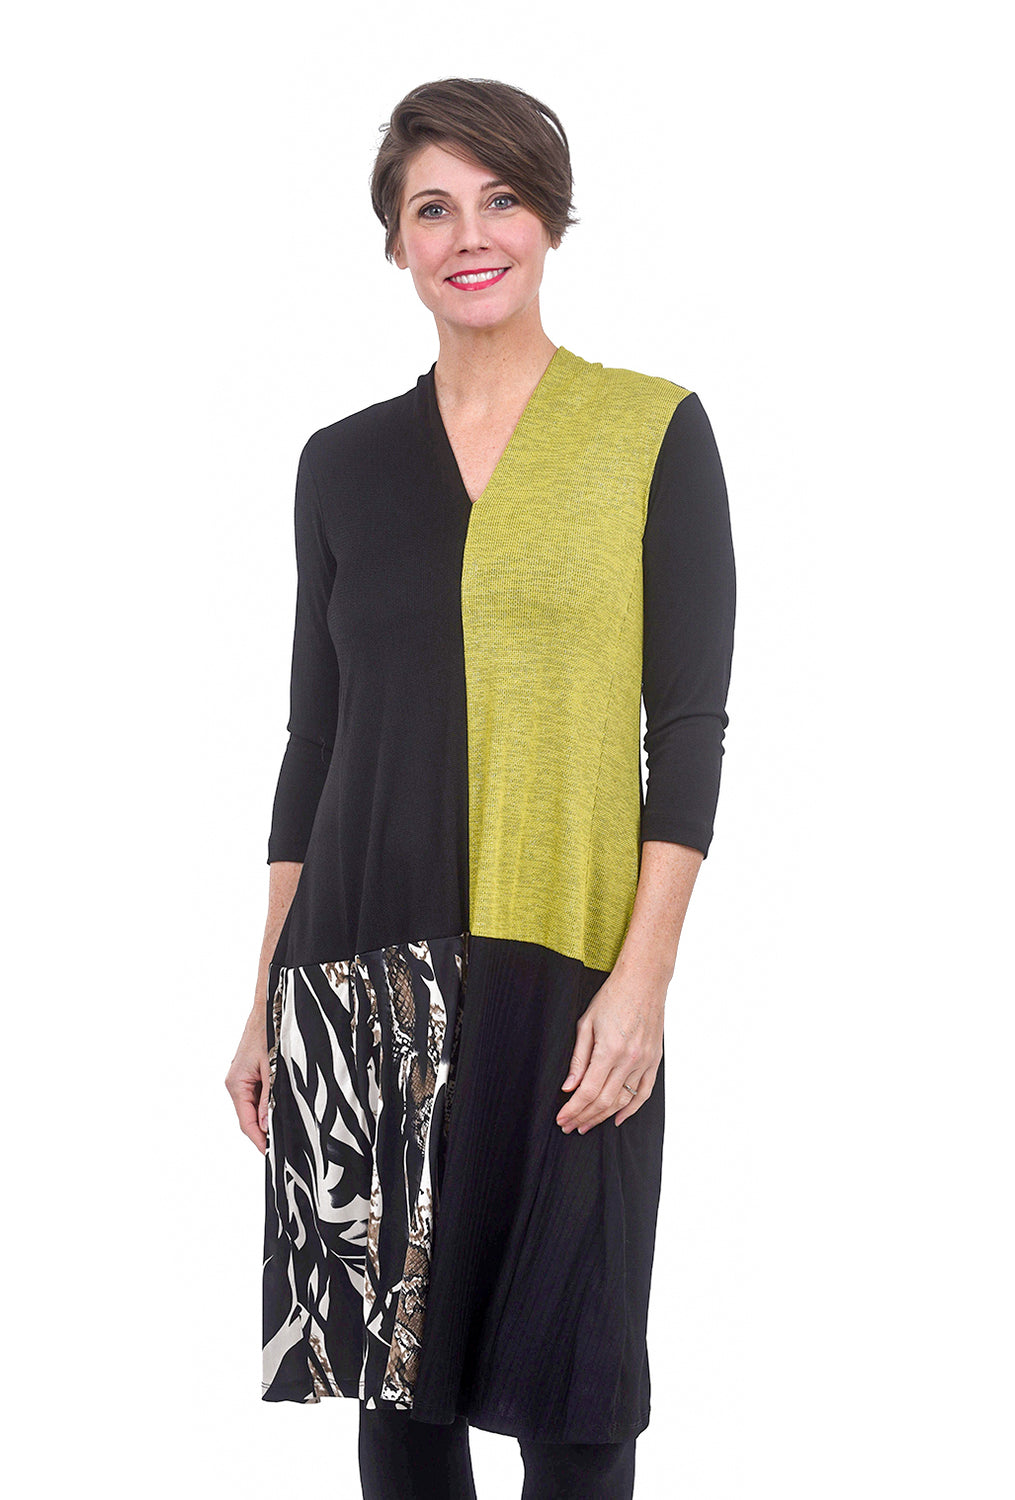 Alembika Savannah Colorblock Dress, Lime/Black